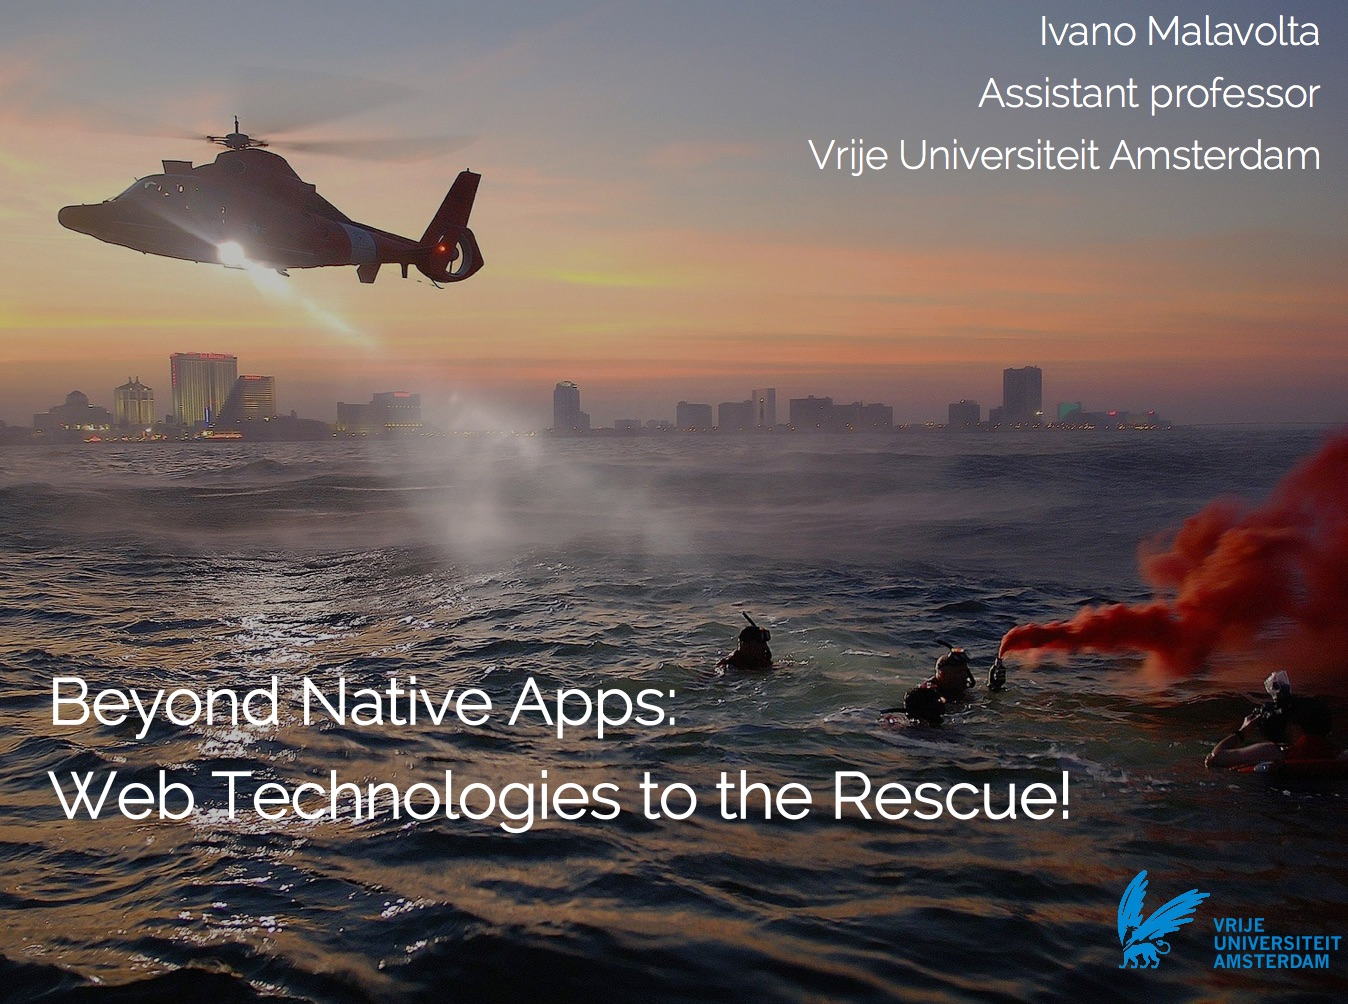 Beyond Native Apps: Web Technologies to the Rescue! [SPLASH 2016 – Mobile! keynote]